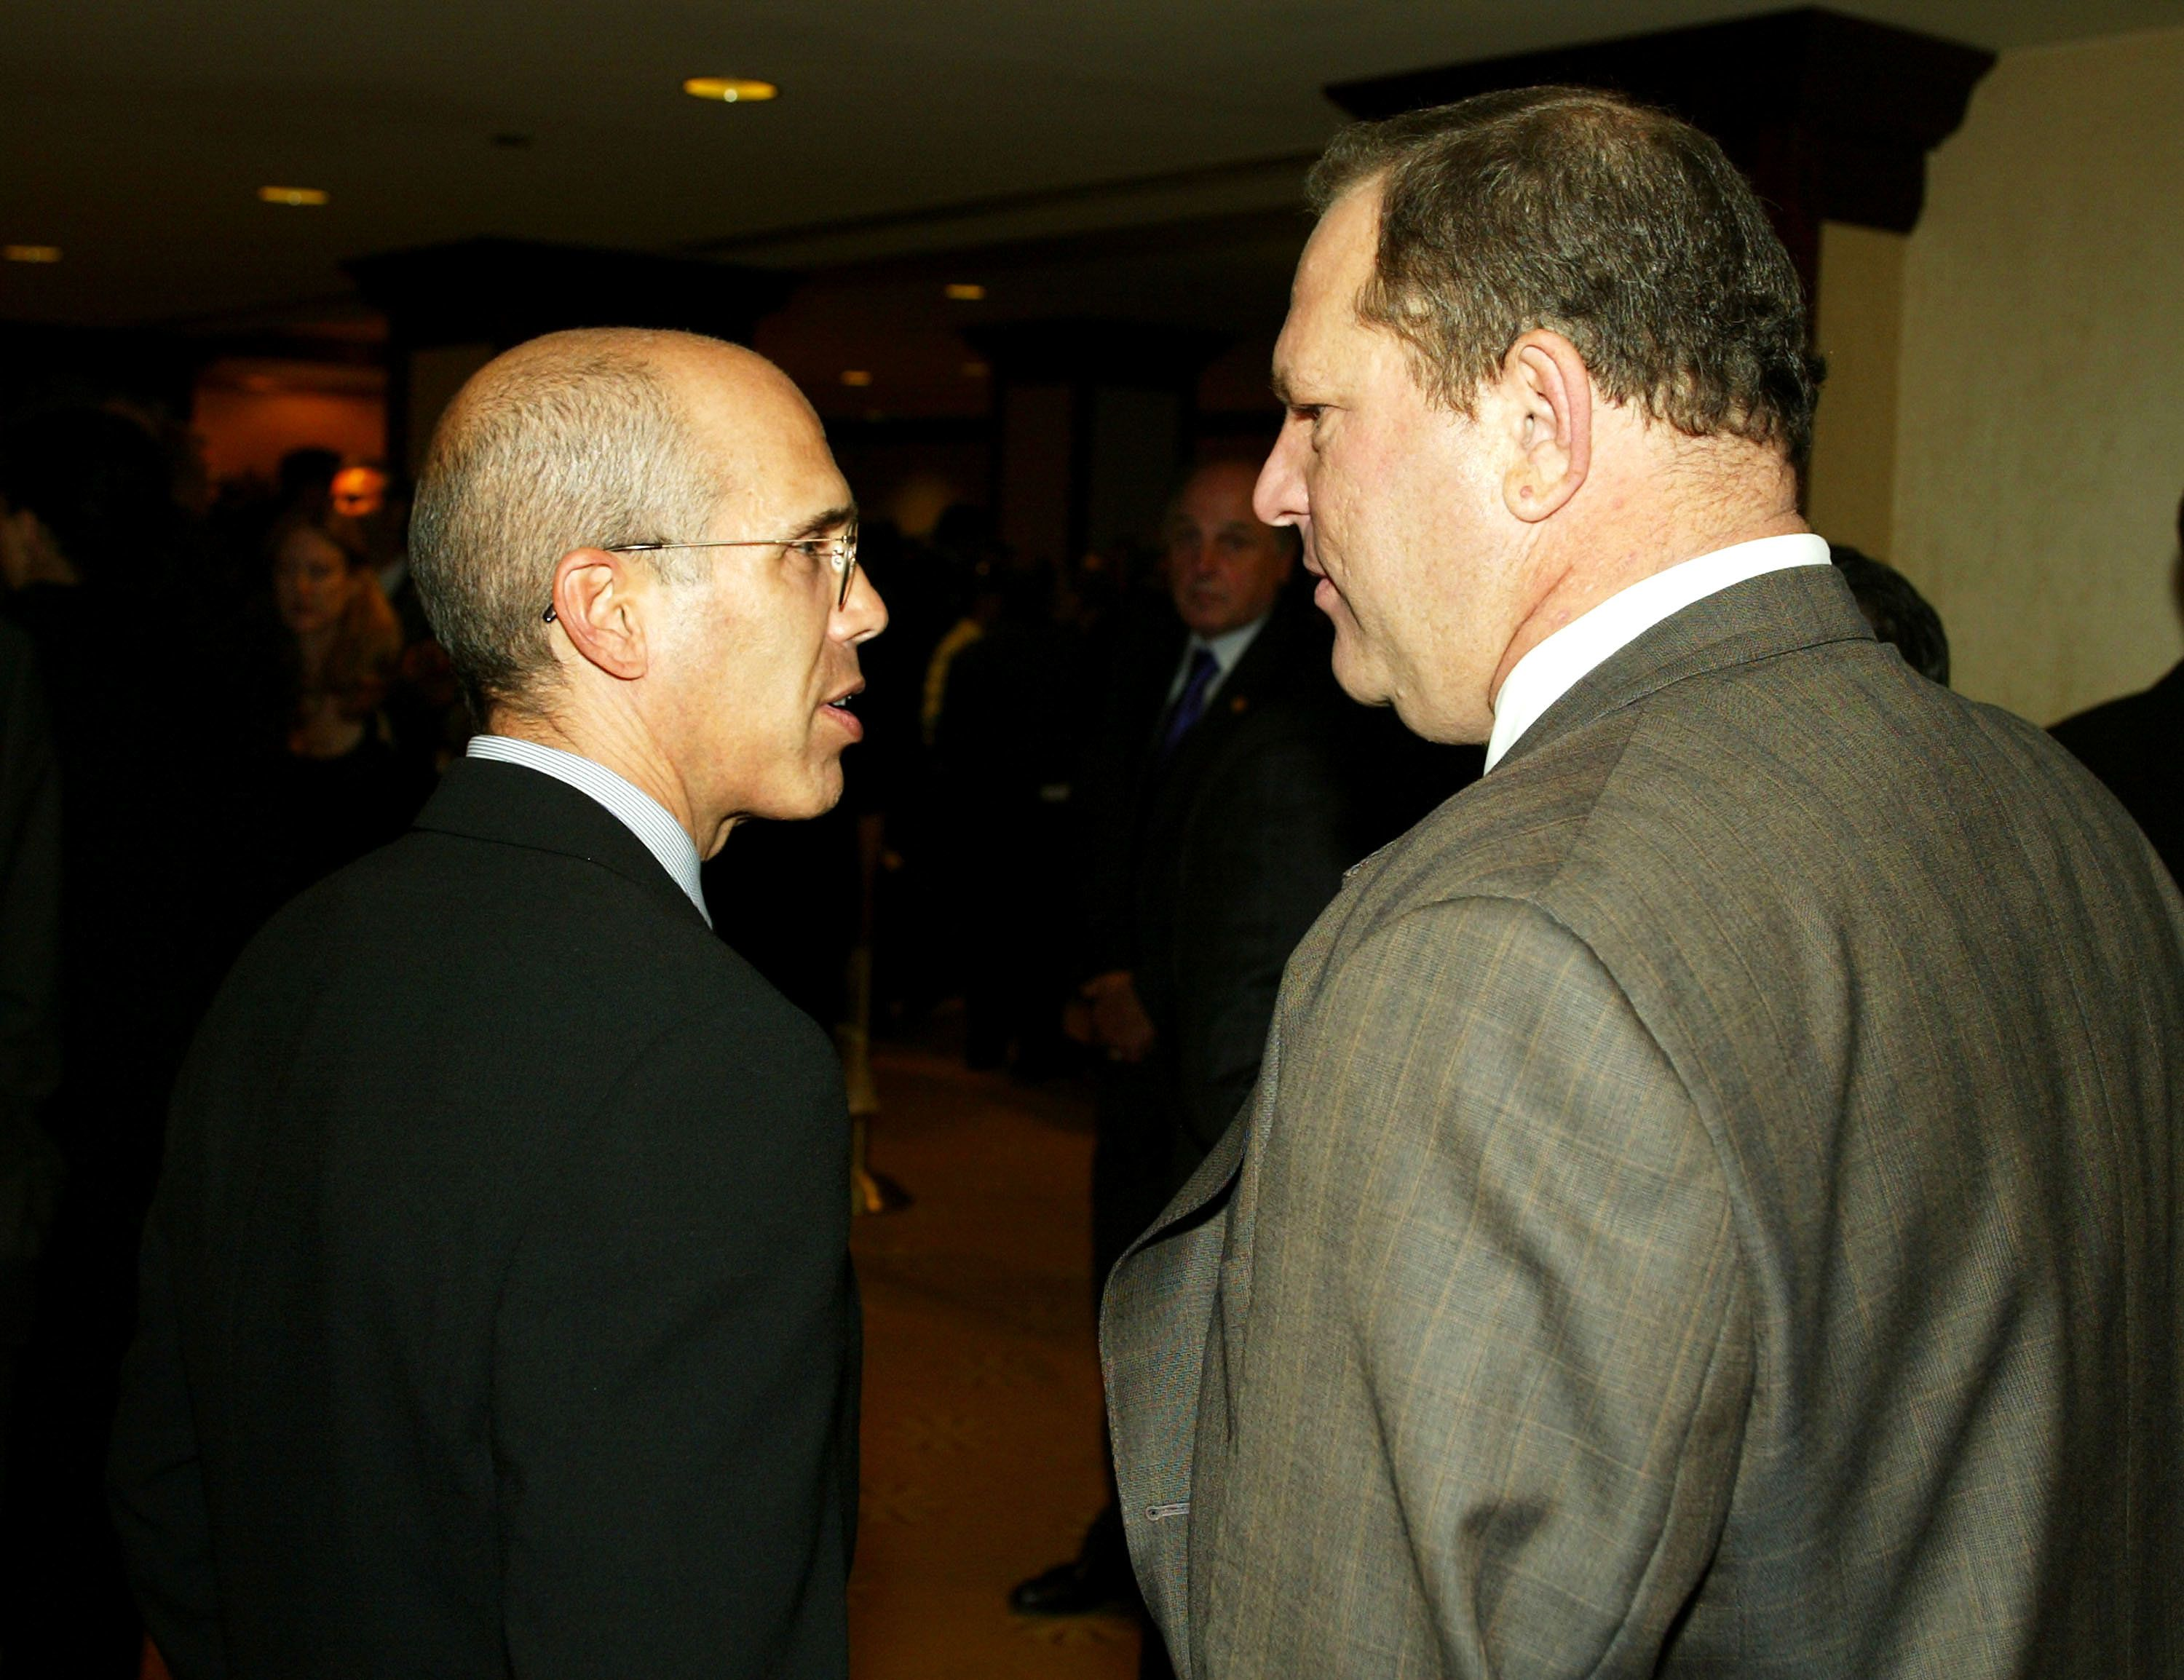 LOS ANGELES - SEPTEMBER 25:  Producers Jeffrey Katzenberg and Harvey Weinstein talk at the 29th Annual Dinner of Champions benefiting The National Multiple Sclerosis Society at the Century Plaza Hotel on September 25, 2003 in Los Angeles, California. (Photo by Kevin Winter/Getty Images)